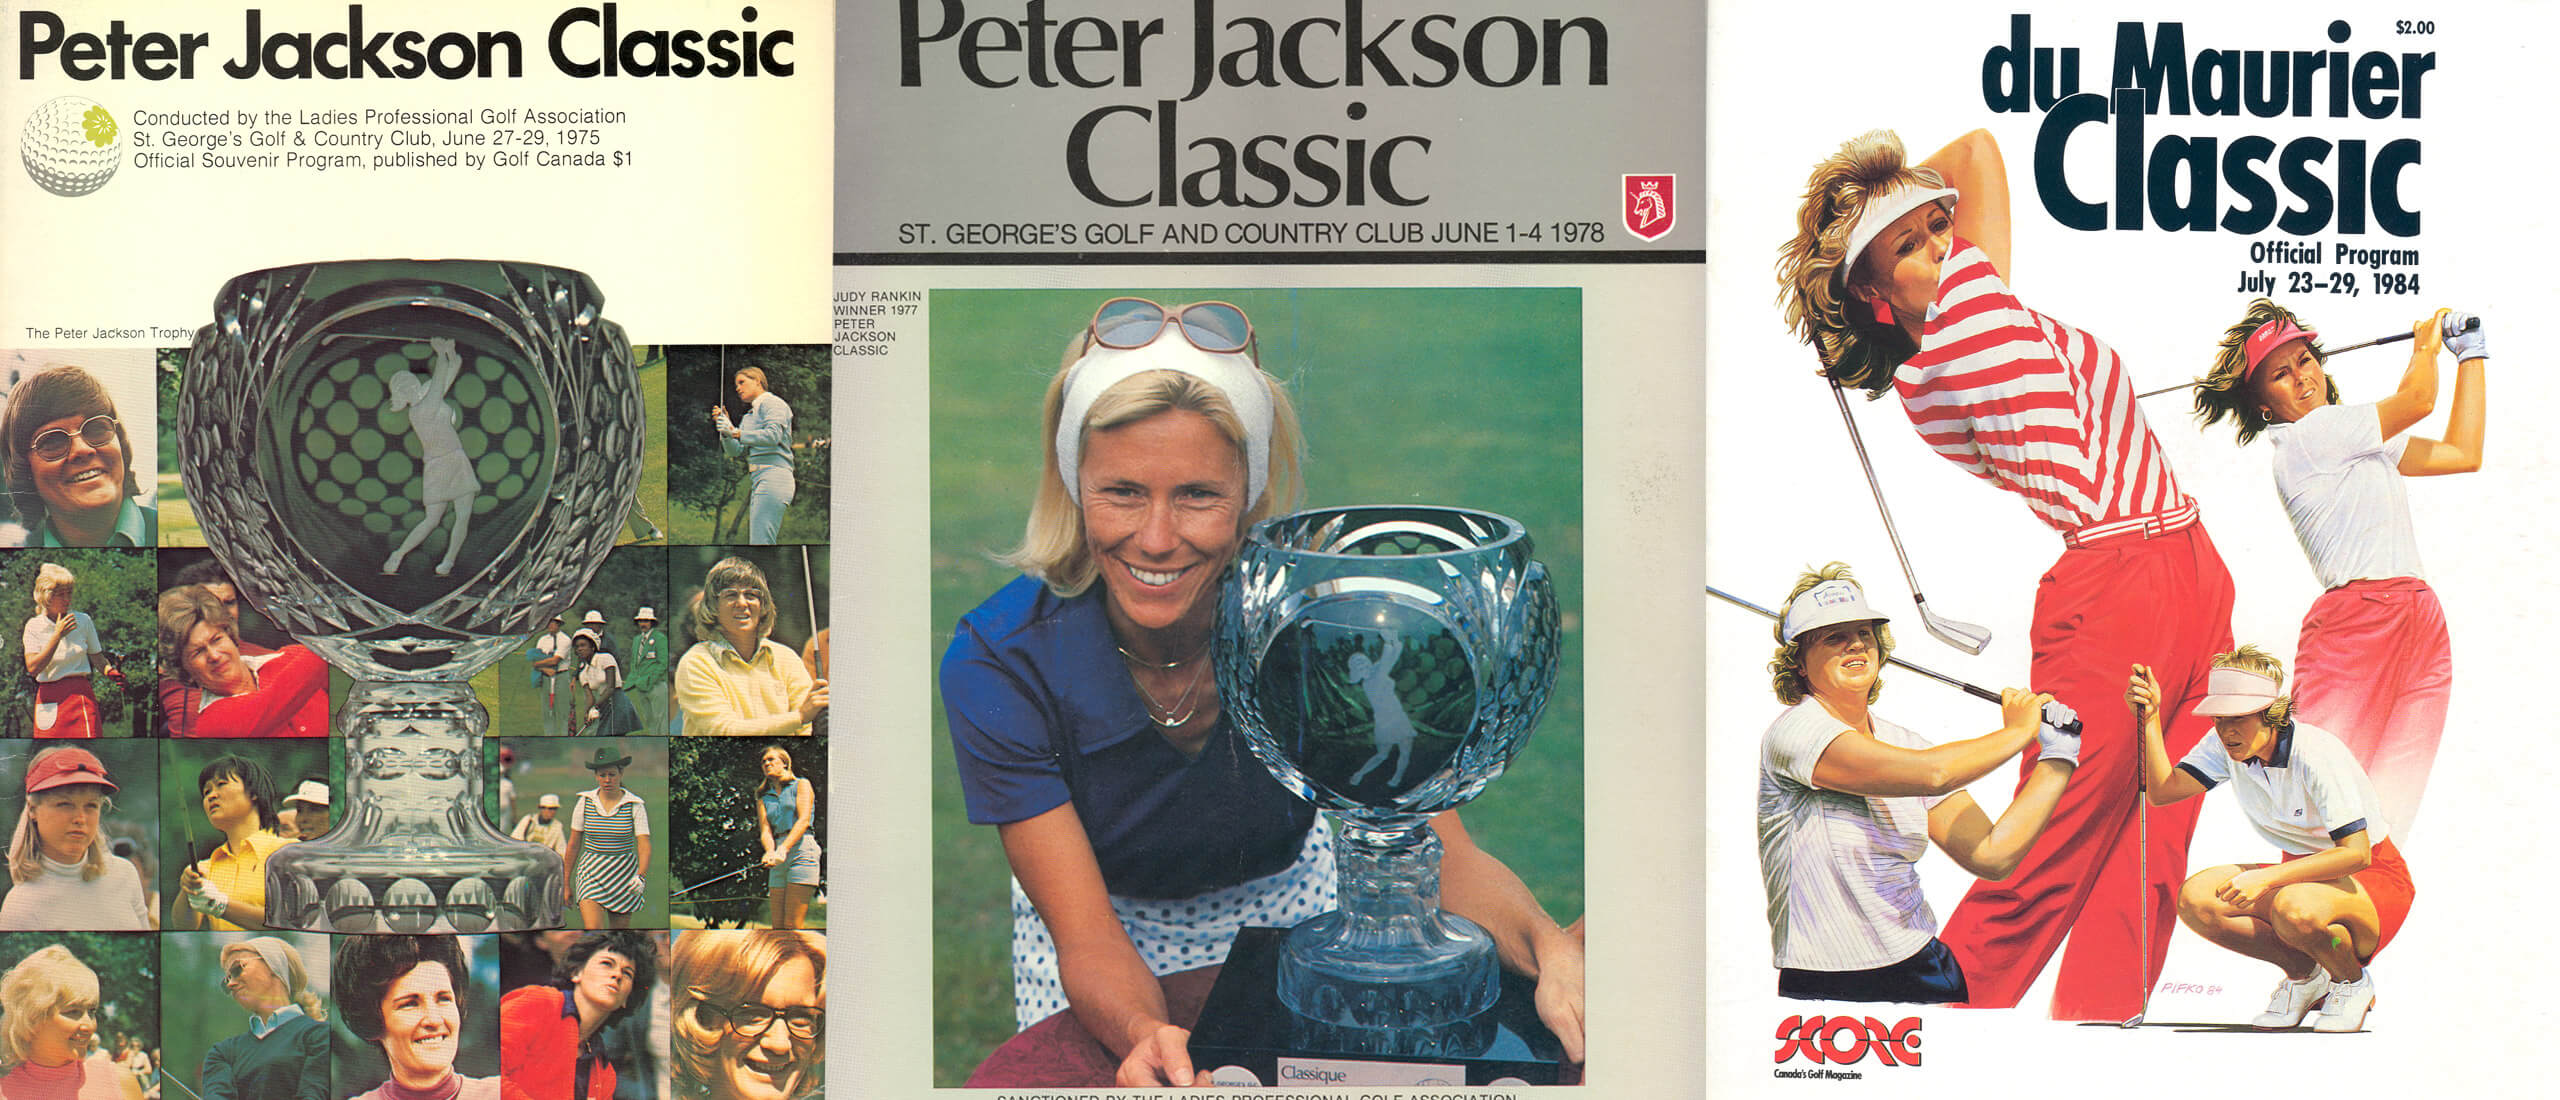 1975-1984 – St. George's Tests LPGA Players